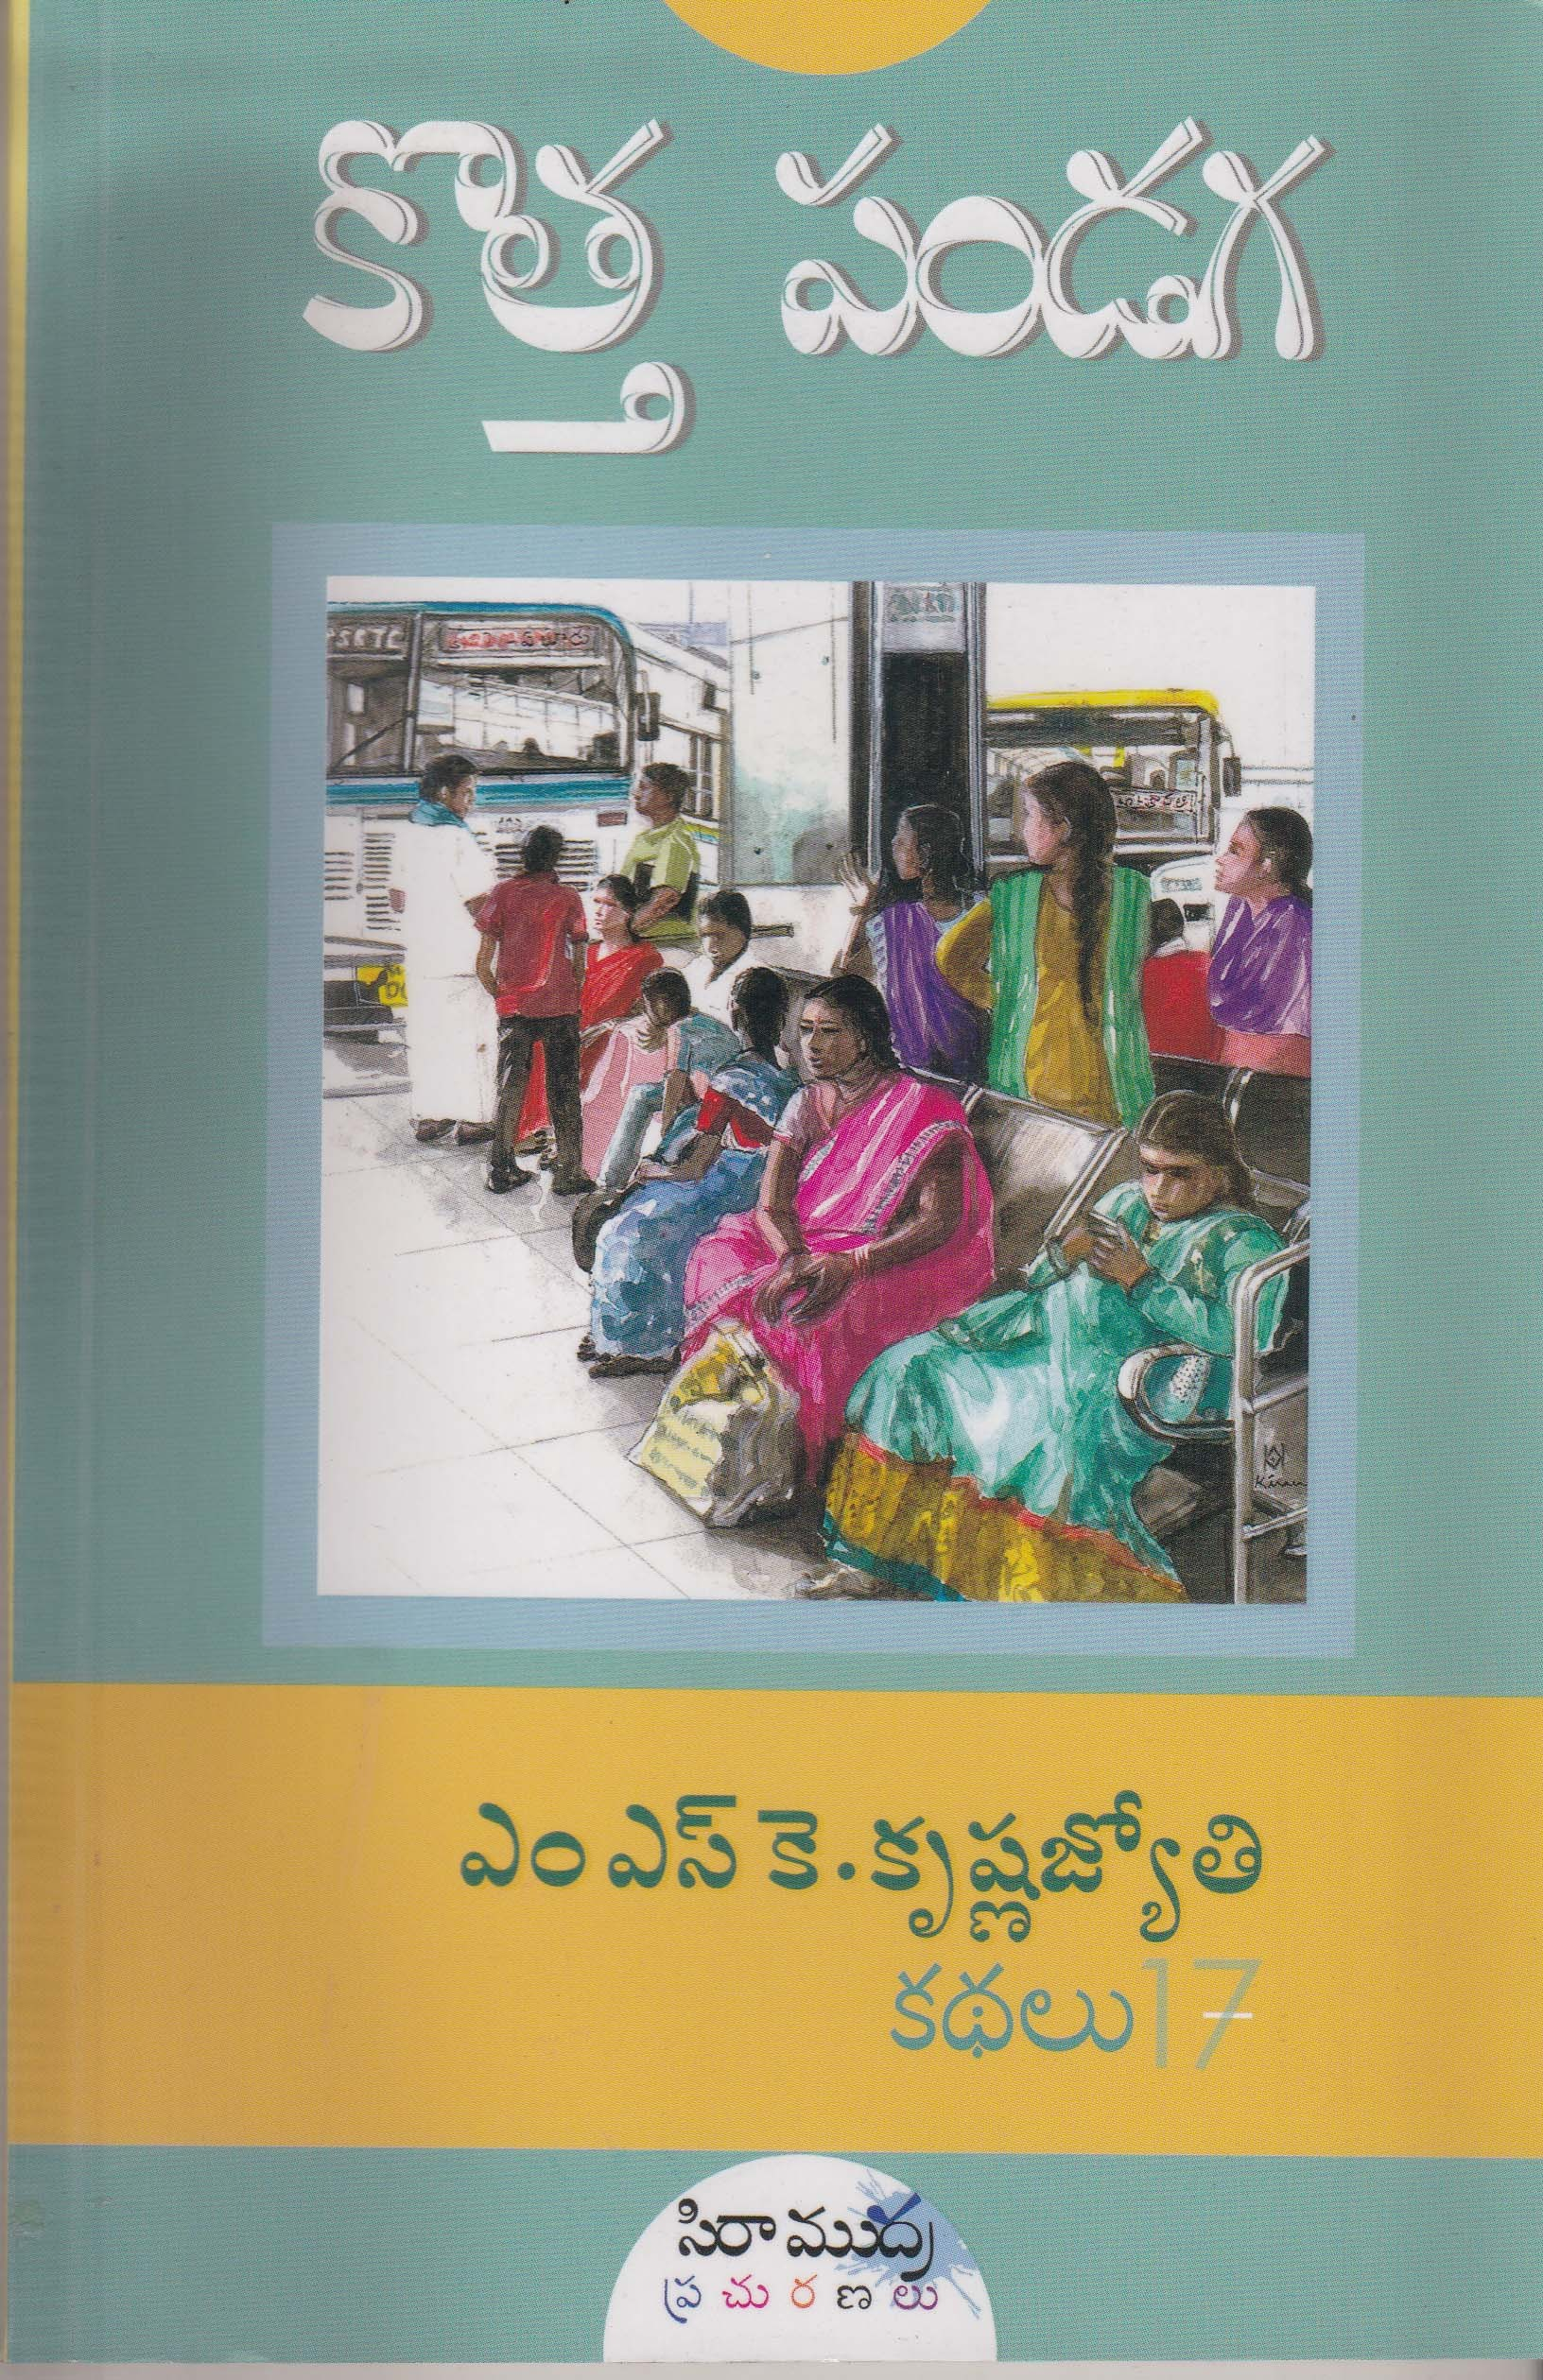 kotta-pandaga-collection-of-short-stories